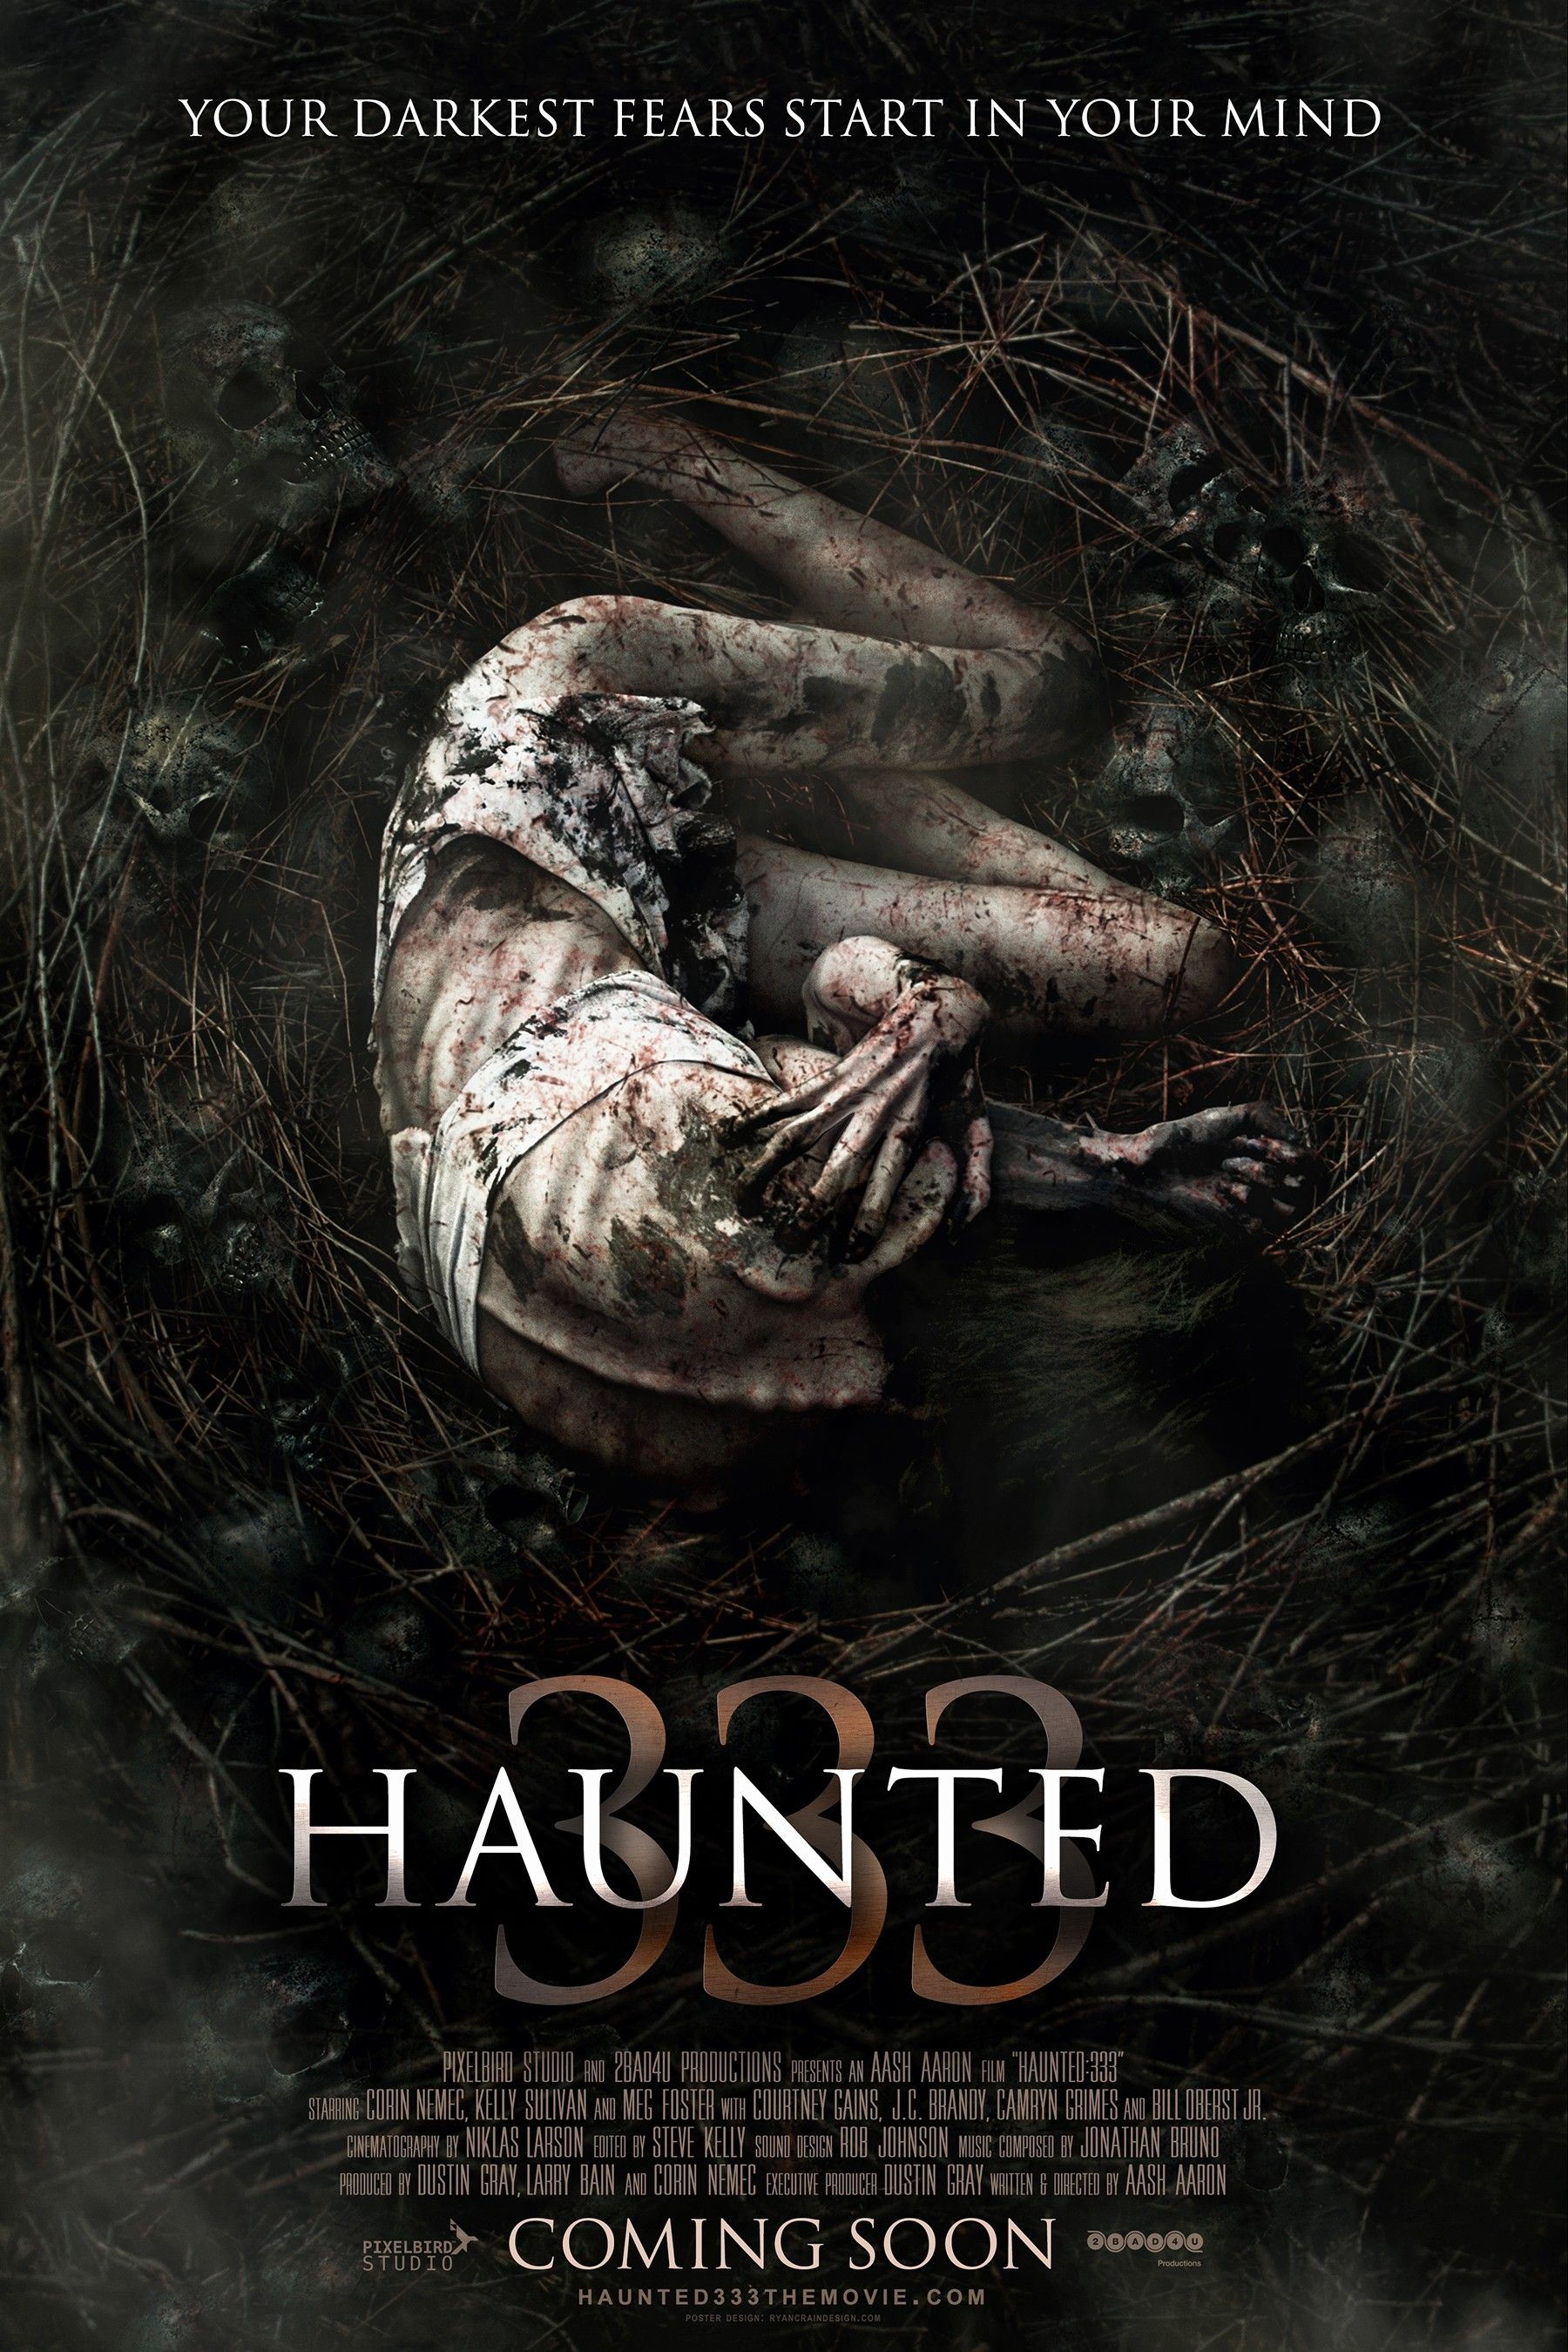 Haunted 333 (2016) | Movies/Horror in 2019 | Pinterest ...